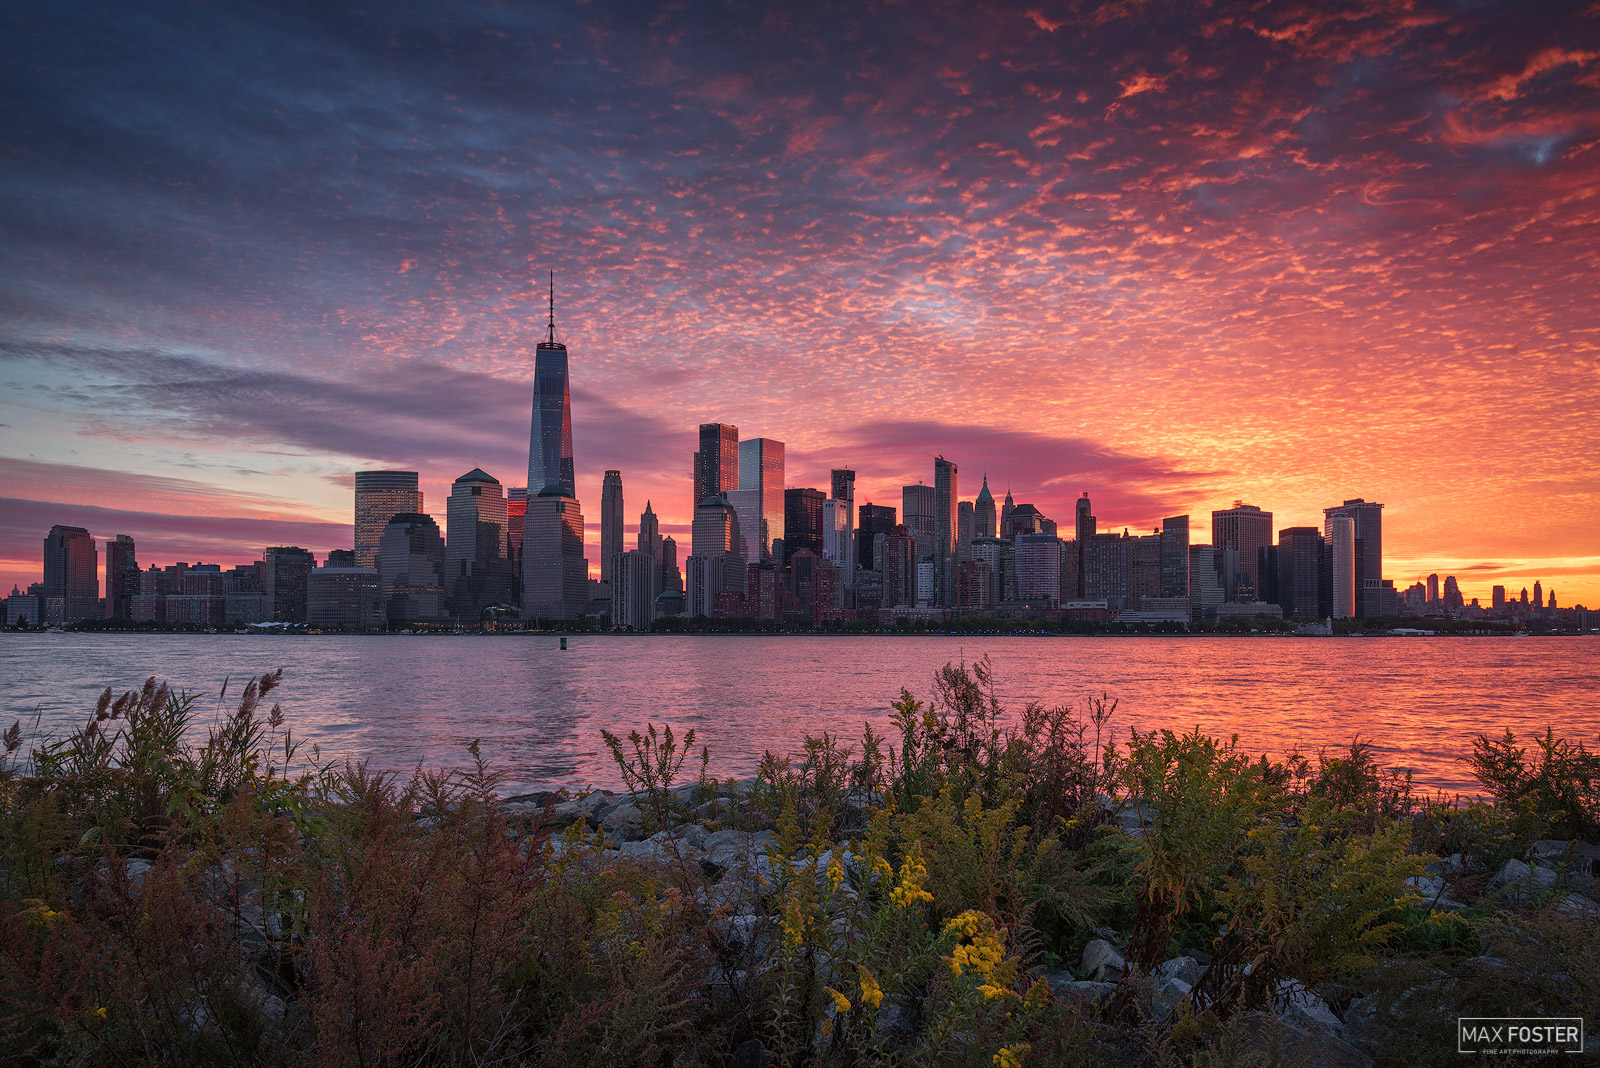 New York City Skyline, Manhattan Skyline, Rise and Shine, Hudson River, NYC Skyline, photo